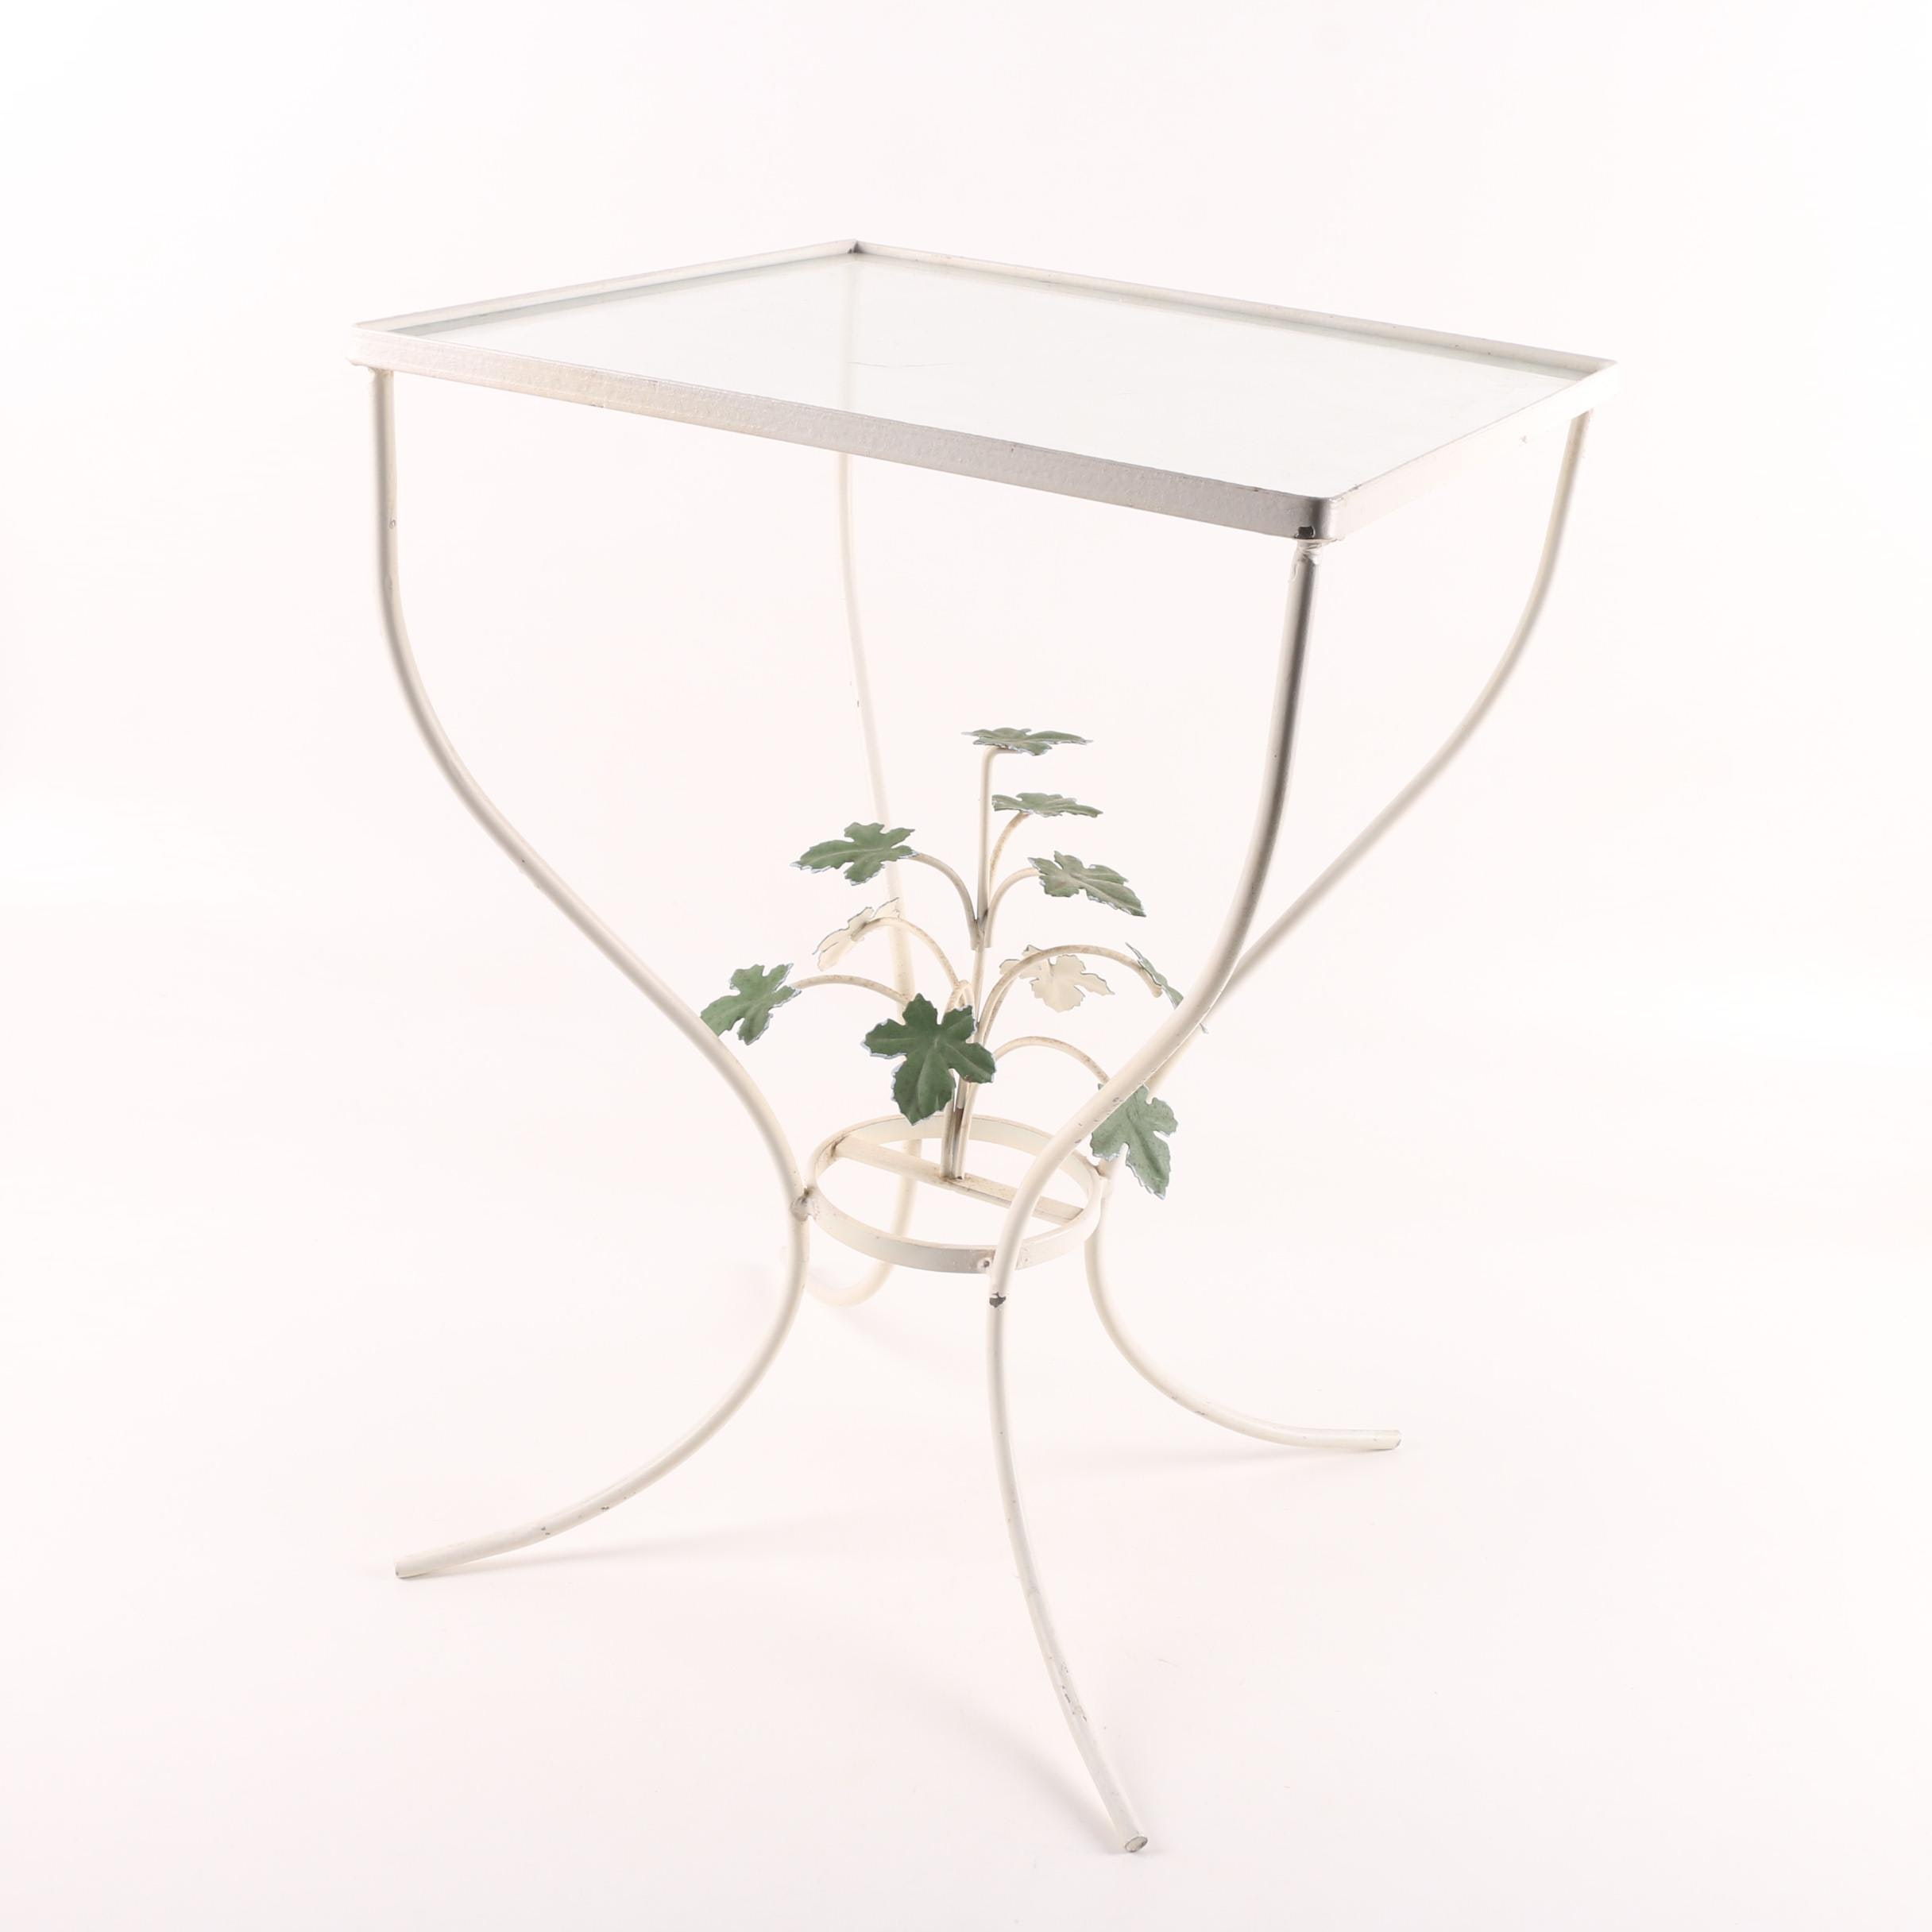 Vintage White Metal Patio Accent Table with Leaf Motif